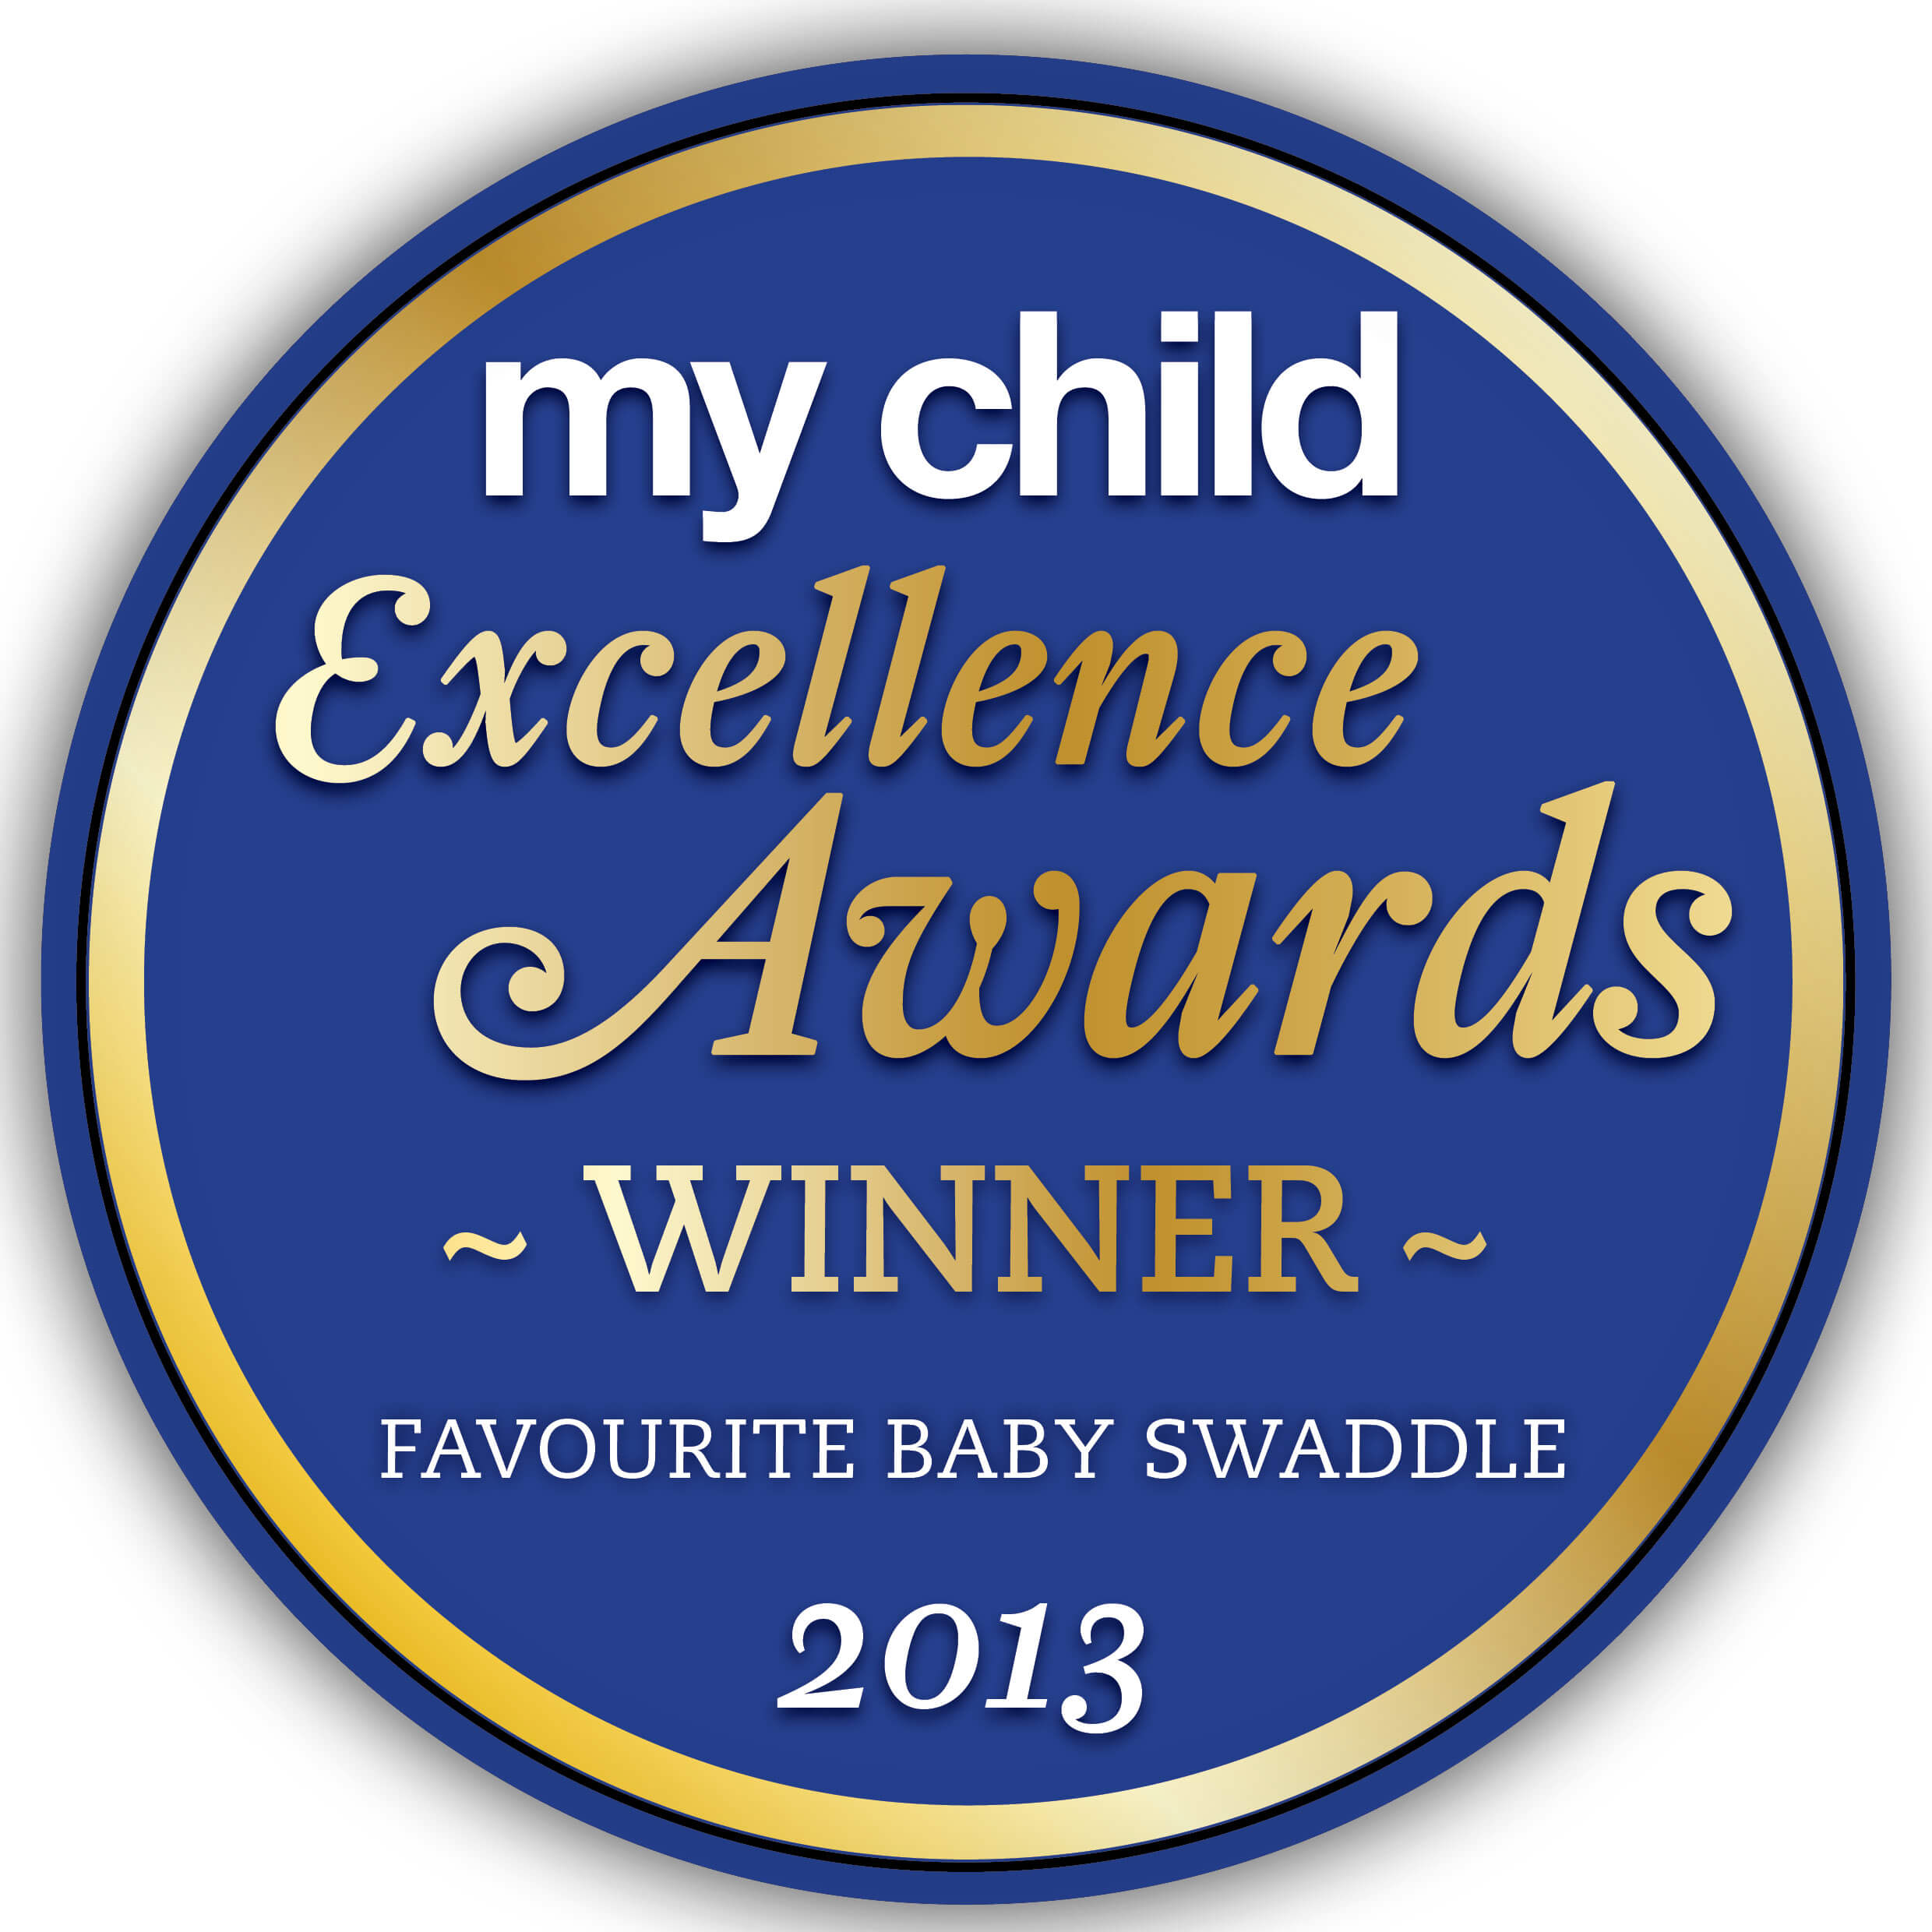 2013-favourite-baby-swaddle-winner-compressed.jpg